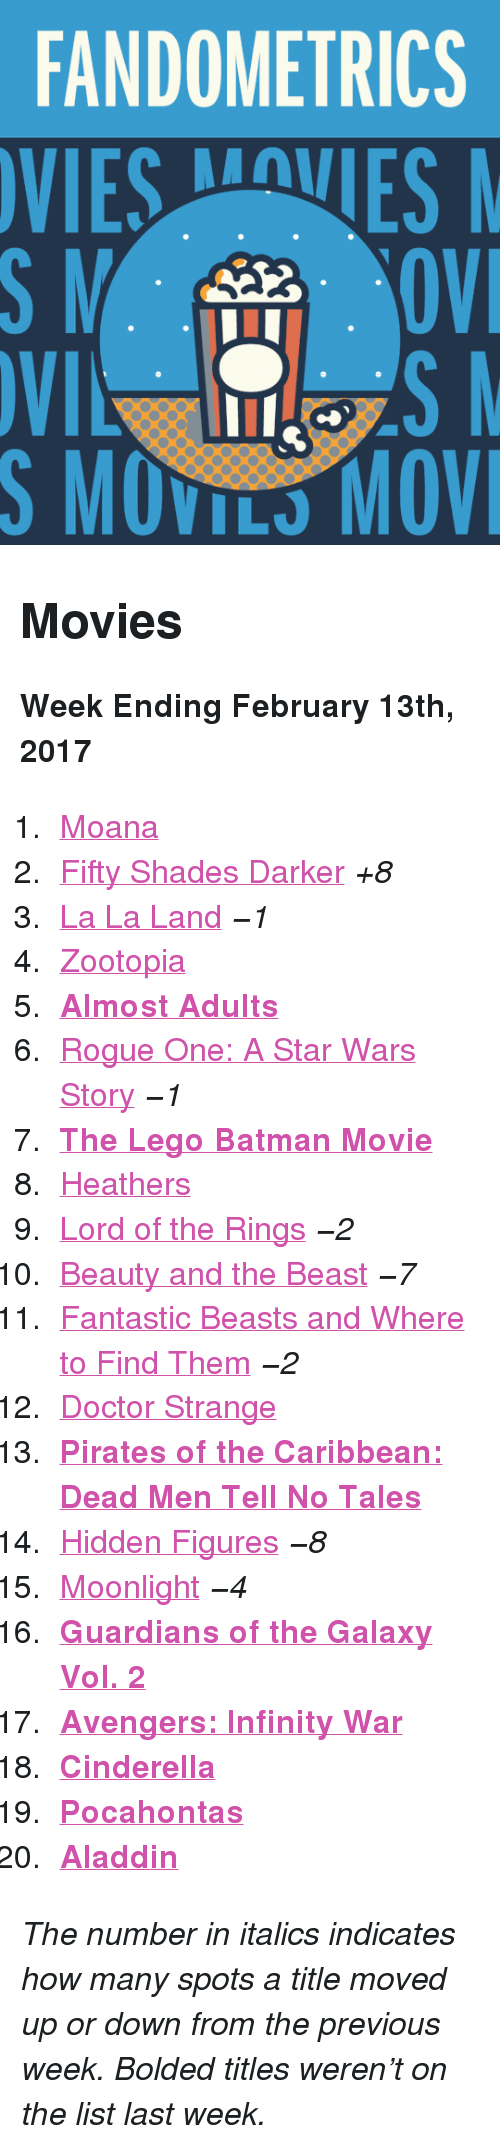 """Aladdin, Batman, and Cinderella : FANDOMETRICS  VIESVES  S MOVILS MOV <h2>Movies</h2><p><b>Week Ending February 13th, 2017</b></p><ol><li><a href=""""http://www.tumblr.com/search/moana"""">Moana</a></li>  <li><a href=""""http://www.tumblr.com/search/fifty%20shades%20darker"""">Fifty Shades Darker</a><i>+8</i></li>  <li><a href=""""http://www.tumblr.com/search/la%20la%20land"""">La La Land</a><i>−1</i></li>  <li><a href=""""http://www.tumblr.com/search/zootopia"""">Zootopia</a></li>  <li><a href=""""http://www.tumblr.com/search/almost%20adults""""><b>Almost Adults</b></a></li>  <li><a href=""""http://www.tumblr.com/search/rogue%20one"""">Rogue One: A Star Wars Story</a><i>−1</i></li>  <li><a href=""""http://www.tumblr.com/search/lego%20batman""""><b>The Lego Batman Movie</b></a></li>  <li><a href=""""http://www.tumblr.com/search/heathers"""">Heathers</a></li>  <li><a href=""""http://www.tumblr.com/search/lotr"""">Lord of the Rings</a><i>−2</i></li>  <li><a href=""""http://www.tumblr.com/search/beauty%20and%20the%20beast"""">Beauty and the Beast</a><i>−7</i></li>  <li><a href=""""http://www.tumblr.com/search/fantastic%20beasts%20and%20where%20to%20find%20them"""">Fantastic Beasts and Where to Find Them</a><i>−2</i></li>  <li><a href=""""http://www.tumblr.com/search/doctor%20strange"""">Doctor Strange</a></li>  <li><b><a href=""""http://www.tumblr.com/search/pirates%20of%20the%20caribbean"""">Pirates of the Caribbean: Dead Men Tell No Tales</a></b></li>  <li><a href=""""http://www.tumblr.com/search/hidden%20figures"""">Hidden Figures</a><i>−8</i></li>  <li><a href=""""http://www.tumblr.com/search/moonlight"""">Moonlight</a><i>−4</i></li>  <li><a href=""""http://www.tumblr.com/search/guardians%20of%20the%20galaxy""""><b>Guardians of the Galaxy Vol. 2 </b></a></li>  <li><a href=""""http://www.tumblr.com/search/infinity%20war""""><b>Avengers: Infinity War</b></a></li>  <li><a href=""""http://www.tumblr.com/search/cinderella""""><b>Cinderella</b></a></li>  <li><a href=""""http://www.tumblr.com/search/pocahontas""""><b>Pocahontas</b></a></li>  <li><a href=""""http://www.tumblr.com/search/"""